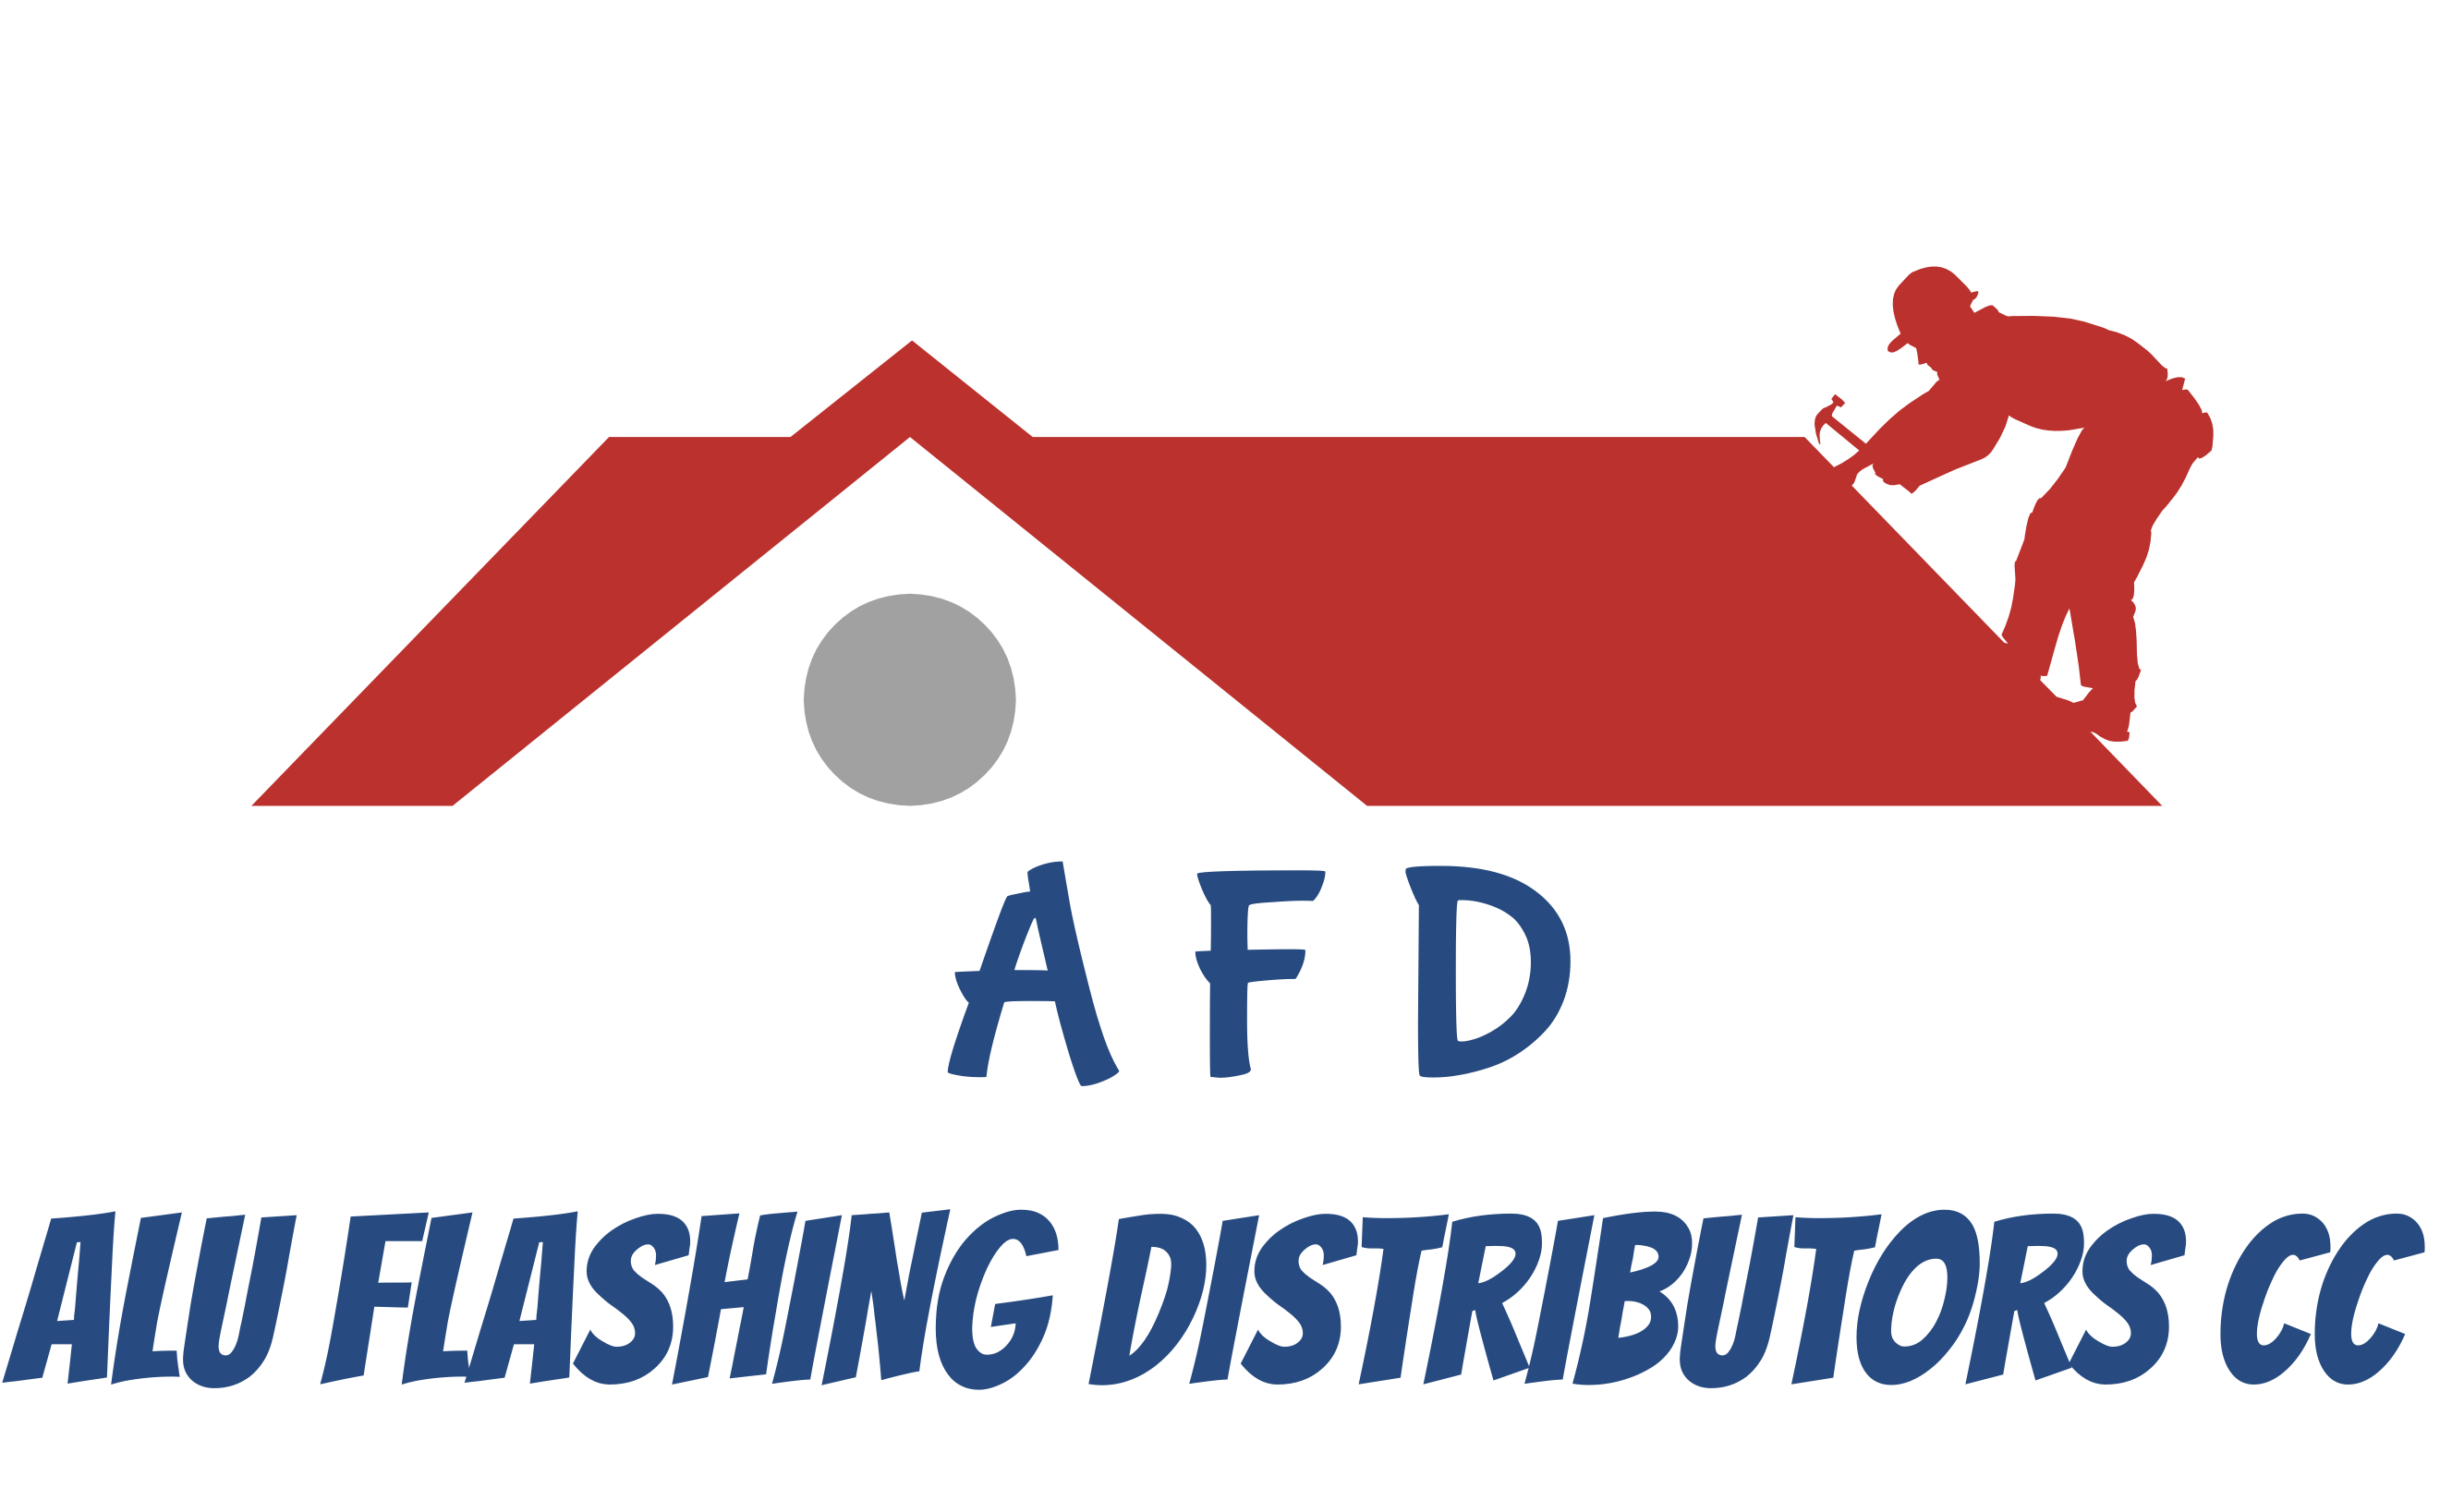 ALU Flashing Distributors: AFD